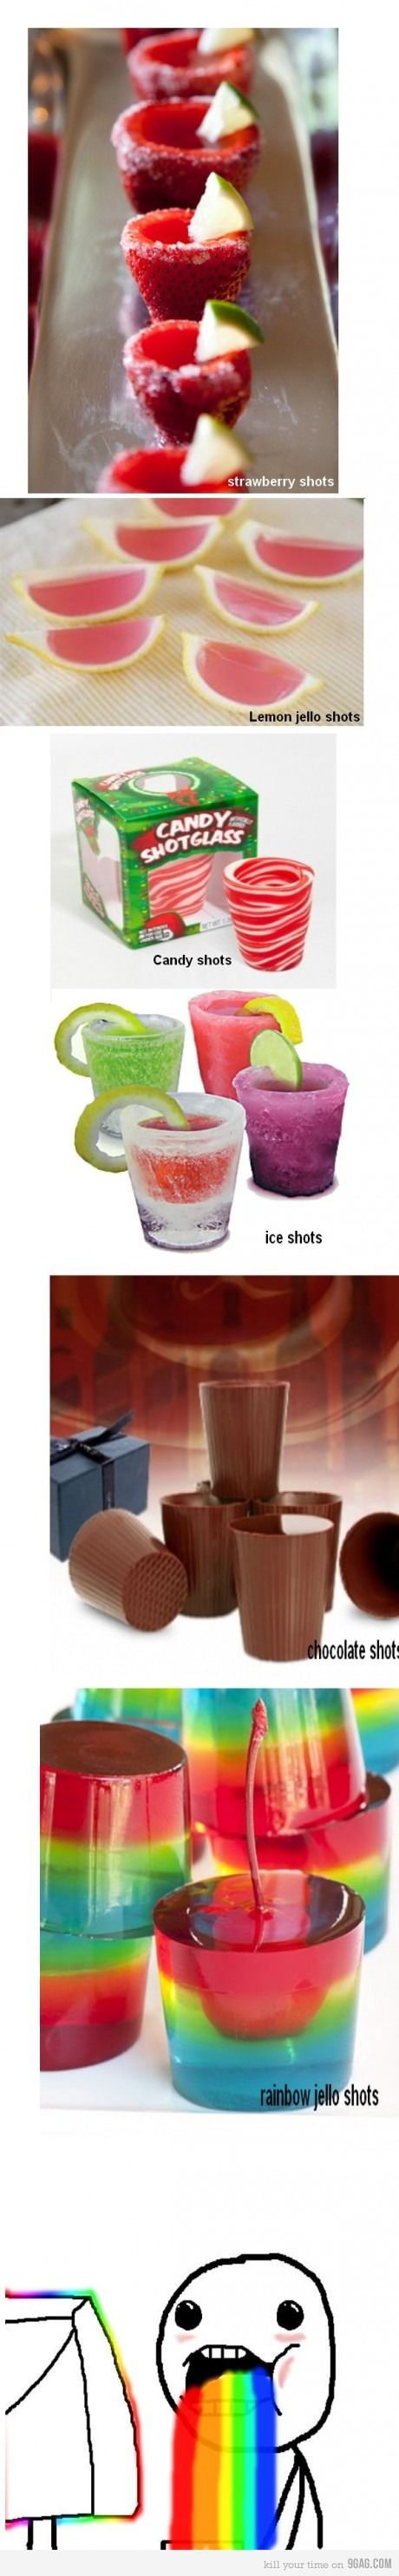 The rainbow shots look brilliant for with the girls :)